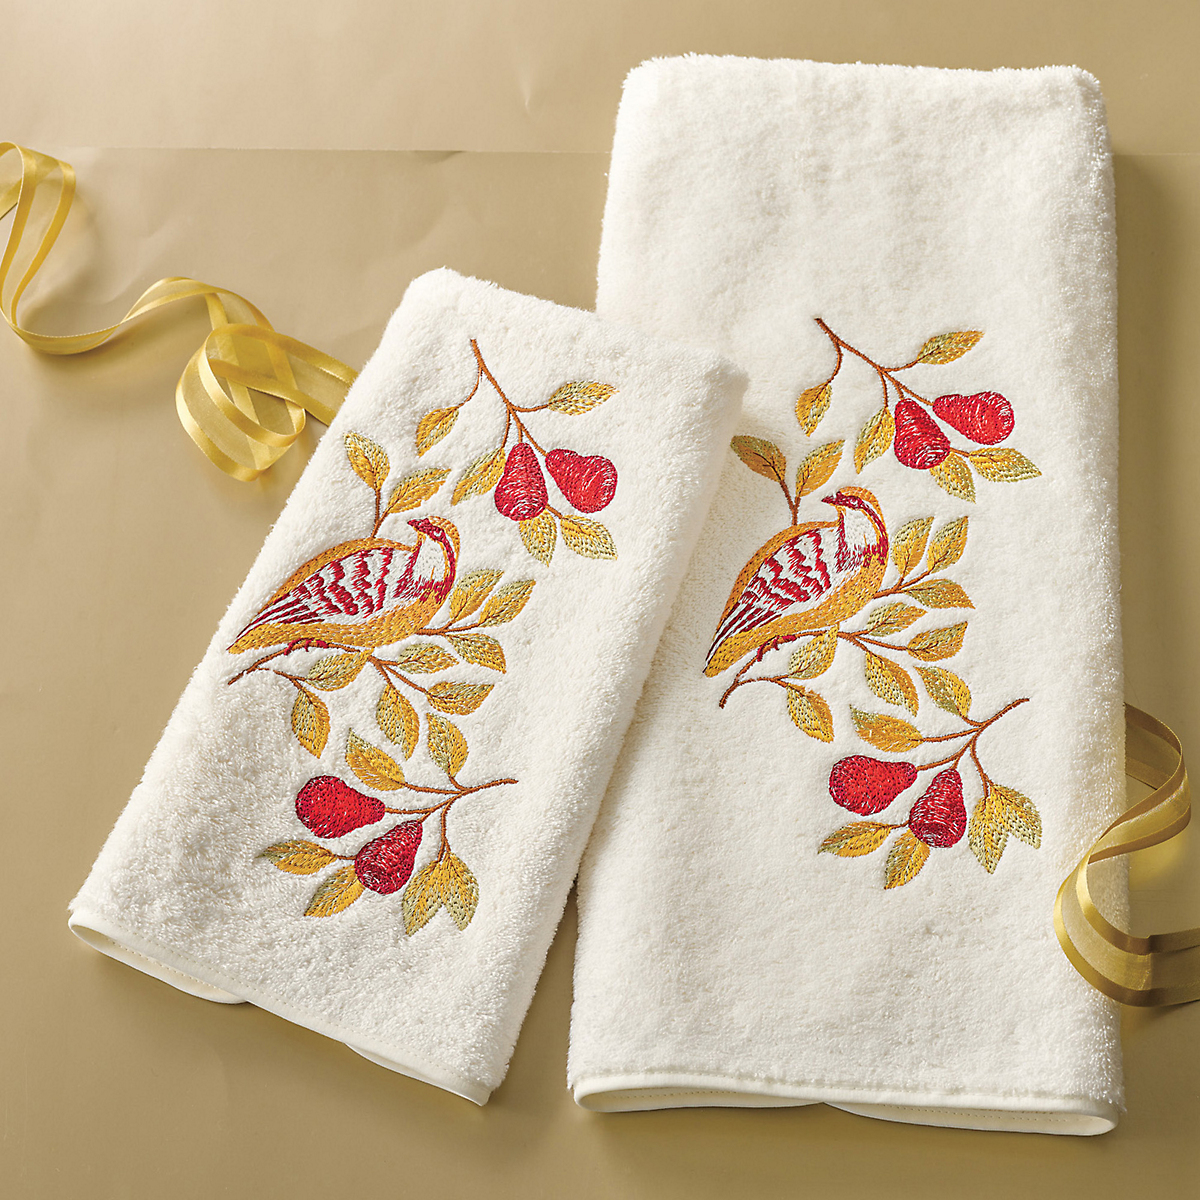 Embroidered Partridge Guest Towels